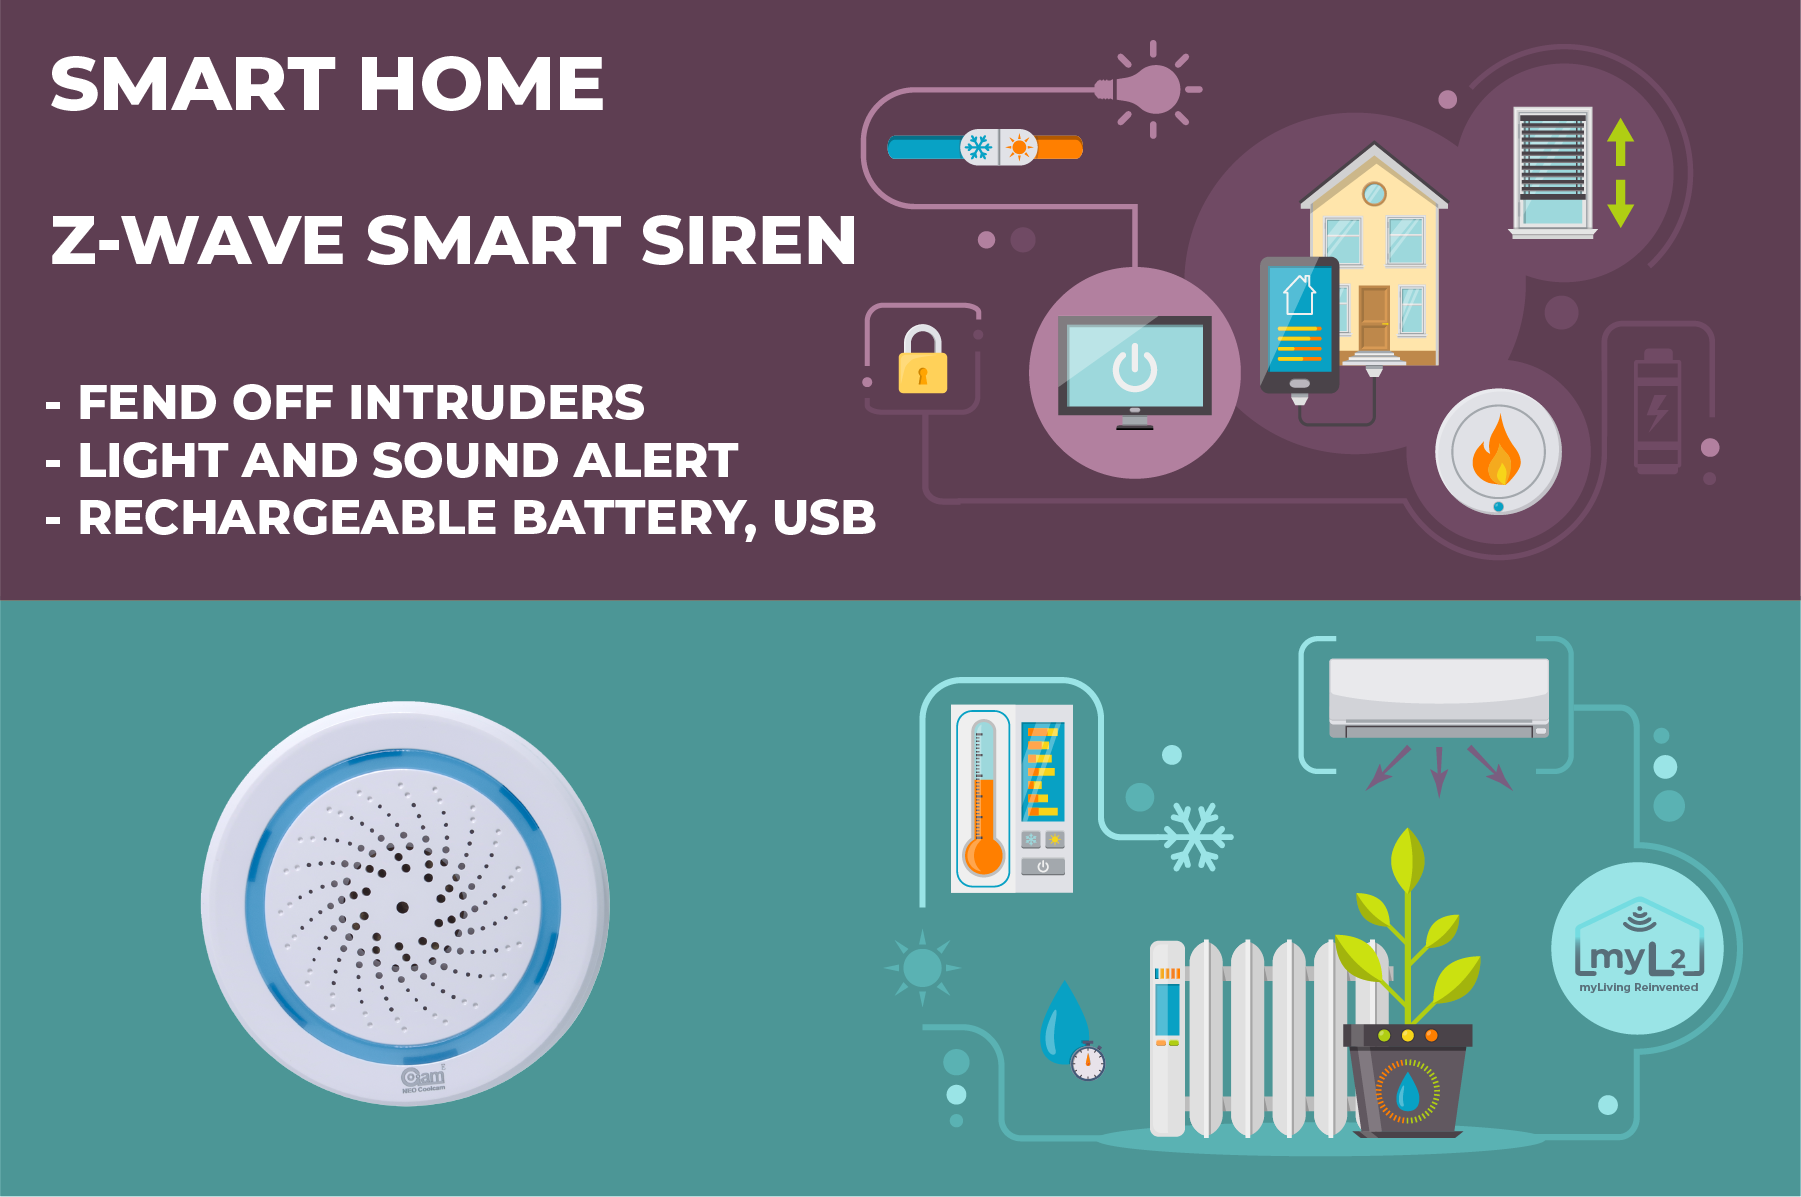 zwave smart siren neo coolcam